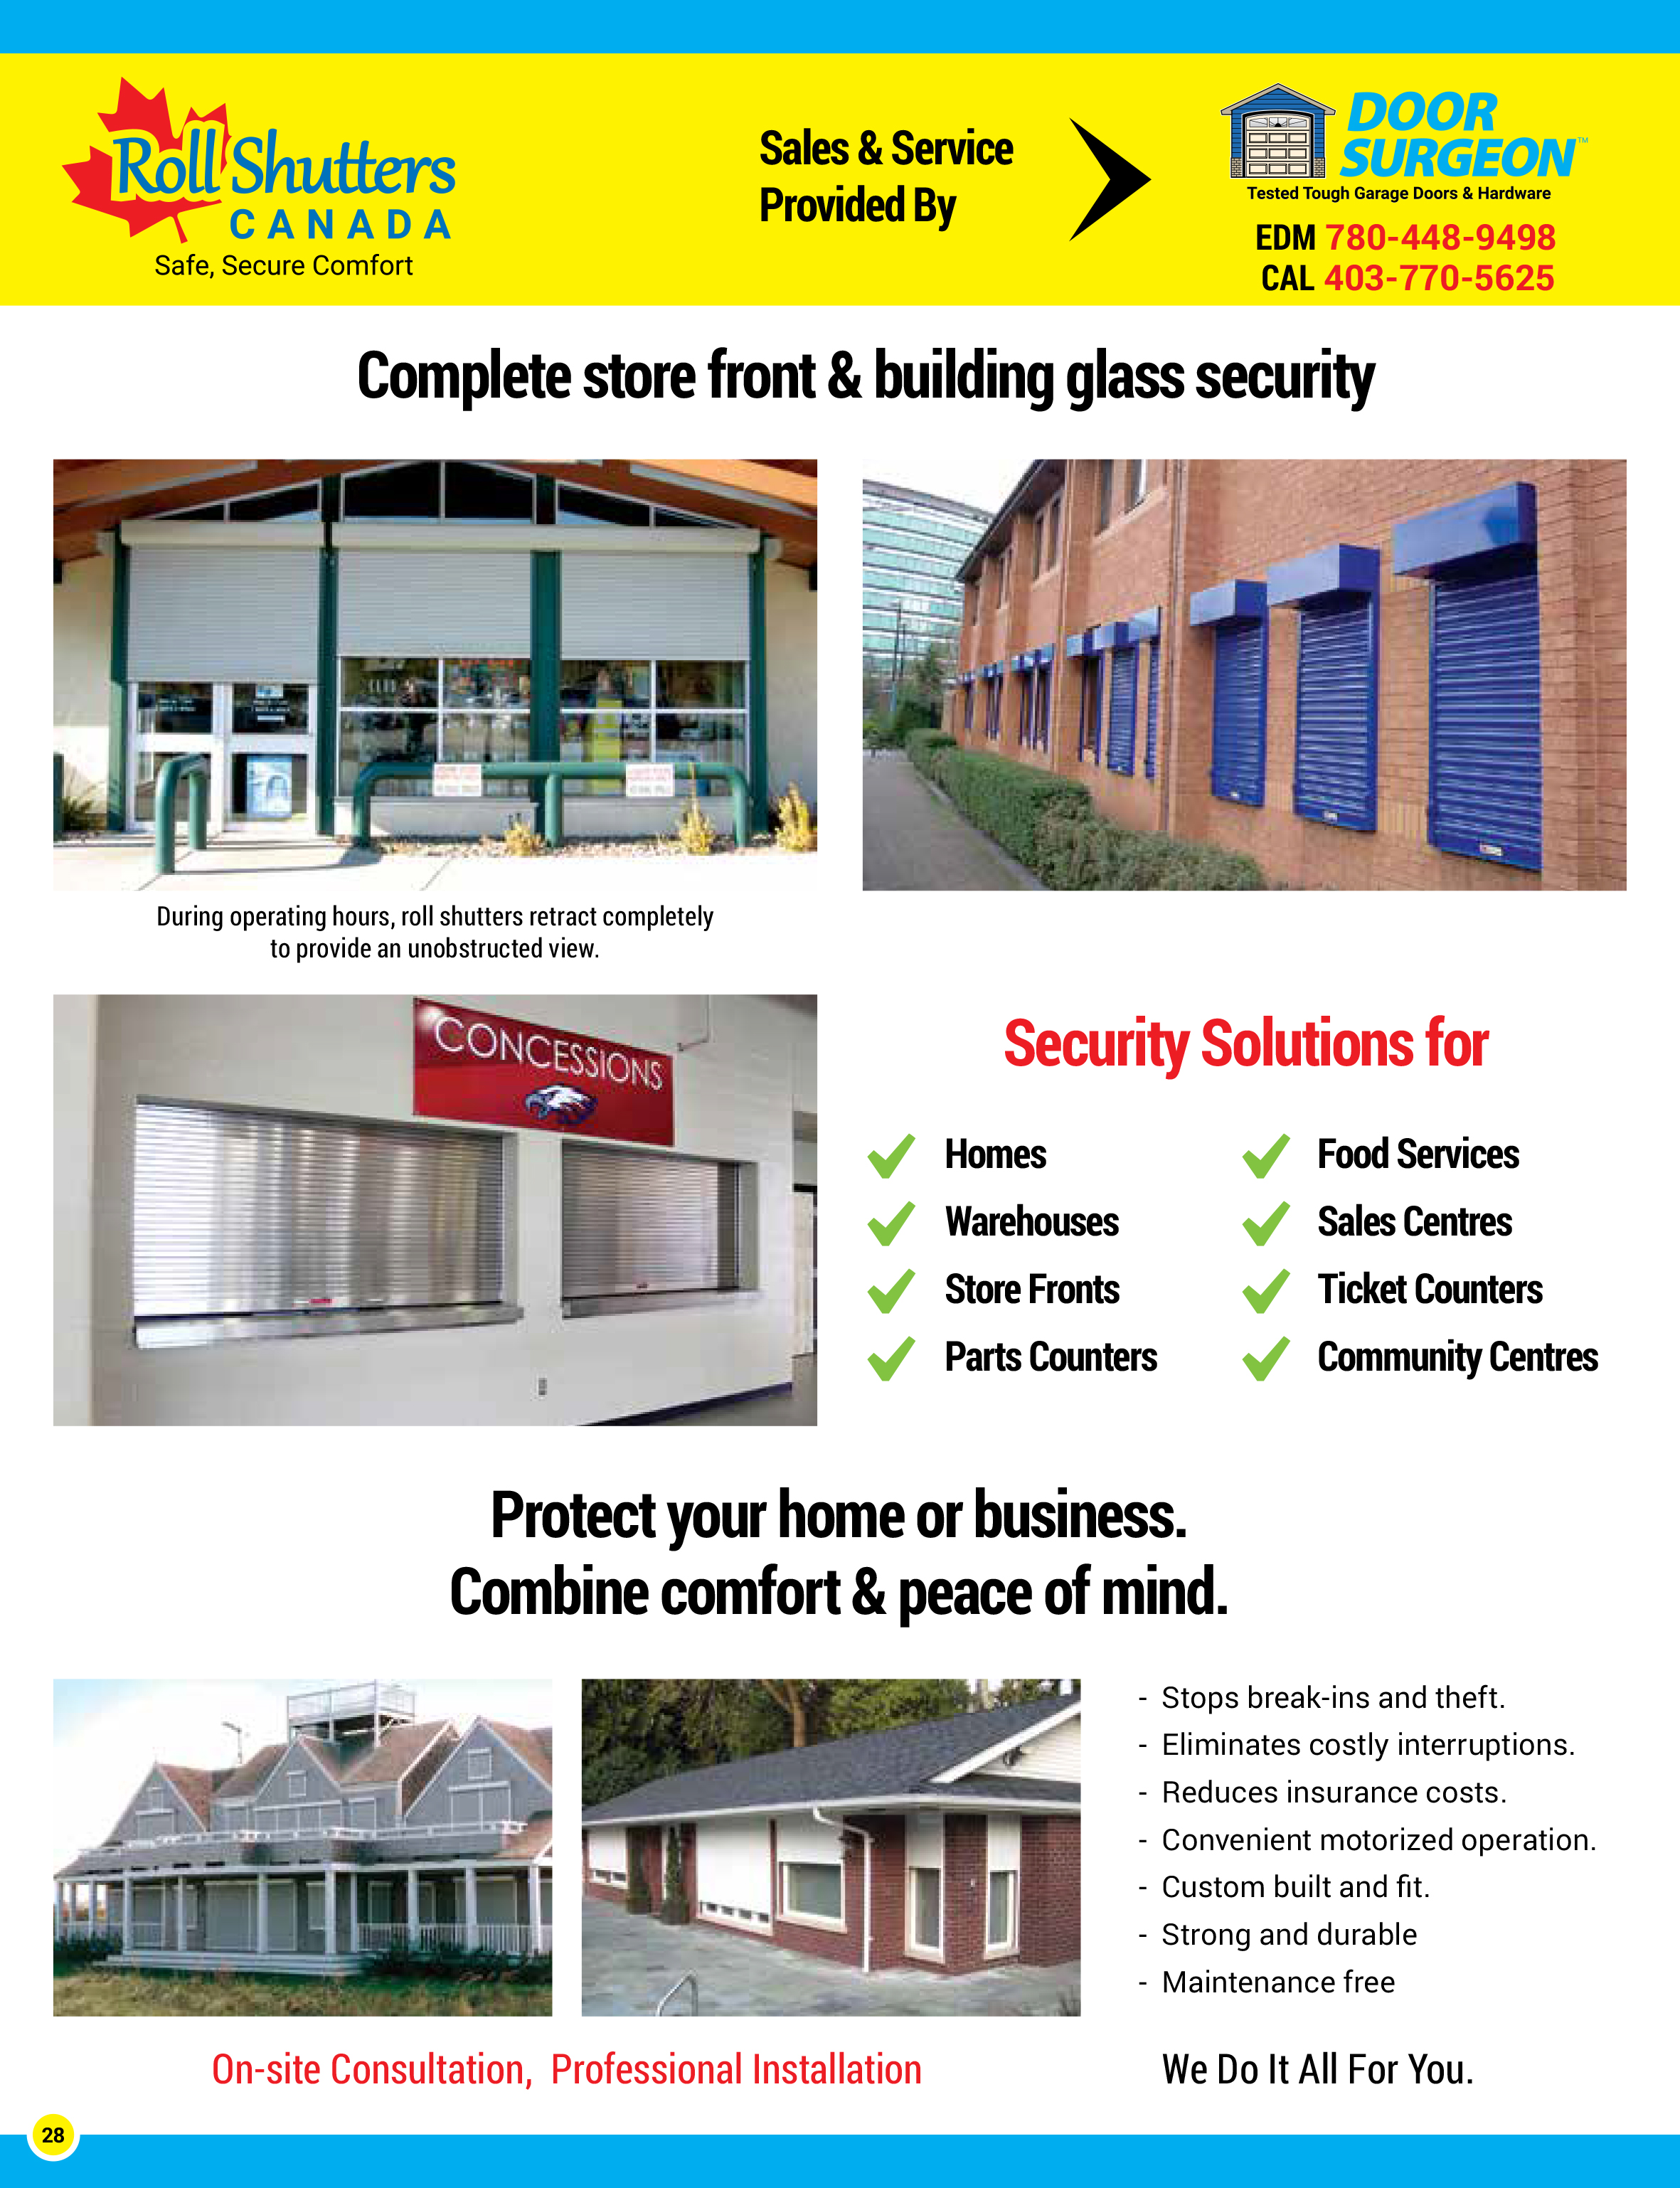 Roll Shutters can provide complete store-front and building glass security. Roll Shutter security solutions are an excellent option for homes, warehouses, food services, sales centres, ticket counters, parts counters and community centres. Roll Shutters provide in-store or at home comfort by keeping windows warm in winter and blocking sun in summer. Roll Shutters stop break-ins and thefts, can reduce insurance costs. We provide custom built and fit Roll Shutters that are strong, durable and maintenance free. Lock Surgeon and Door Surgeon are your Roll Shutter sales and installation professionals.